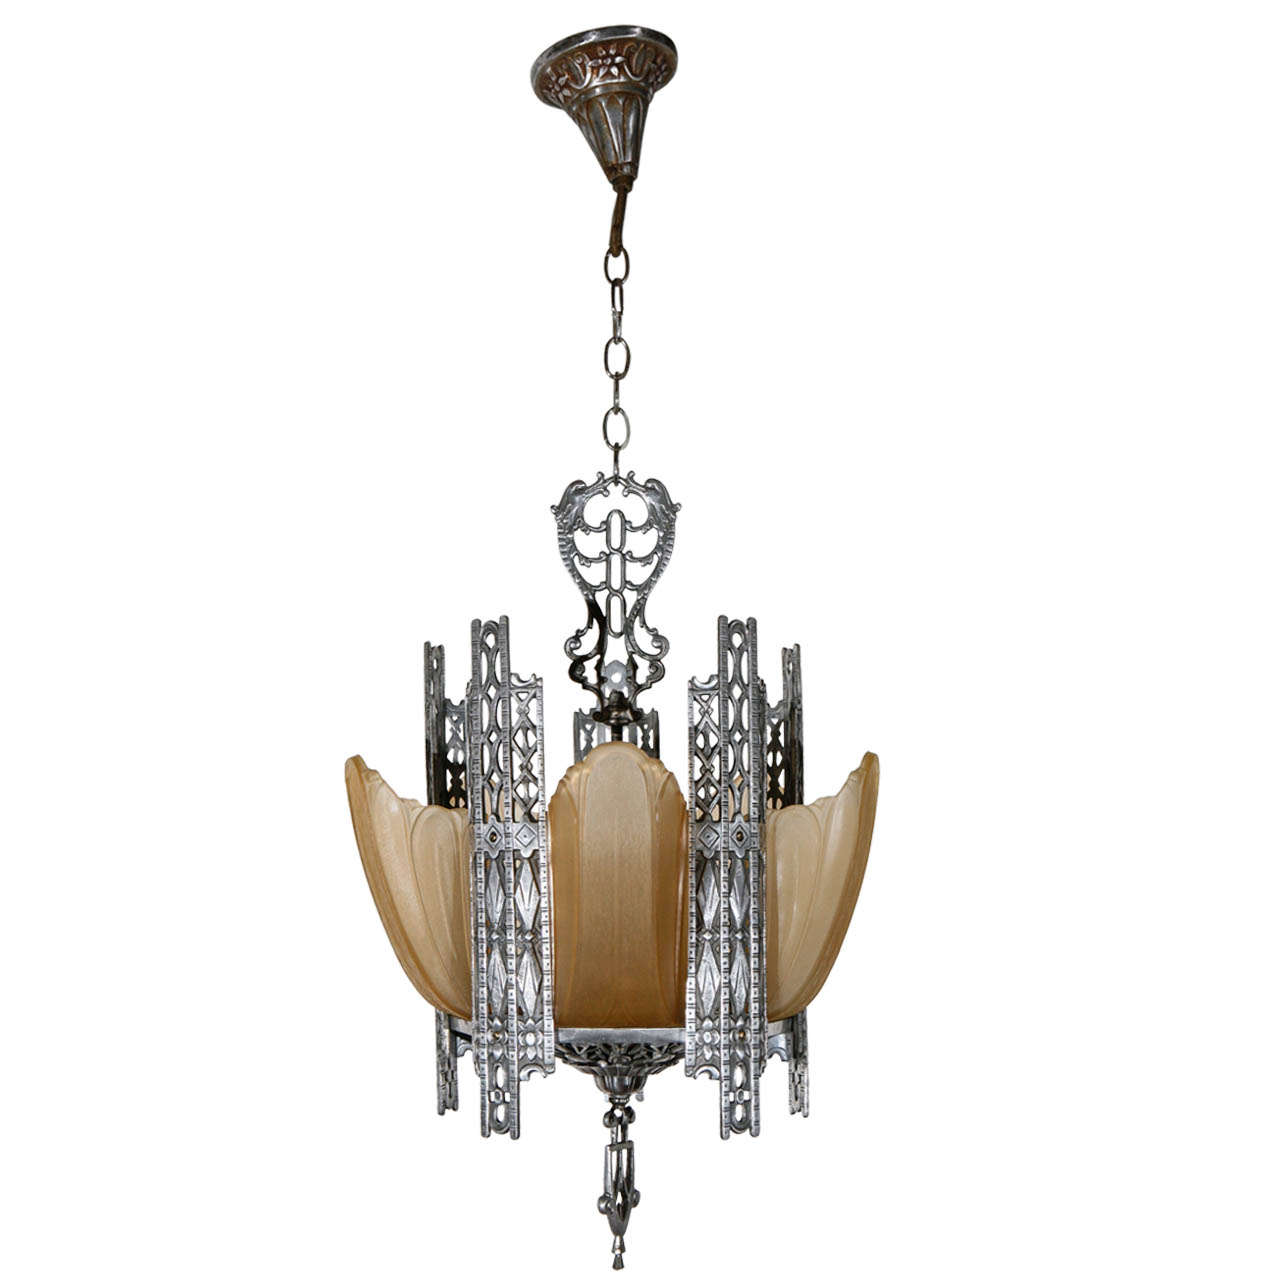 Art deco chandelier at 1stdibs for Contemporary chandeliers and pendants